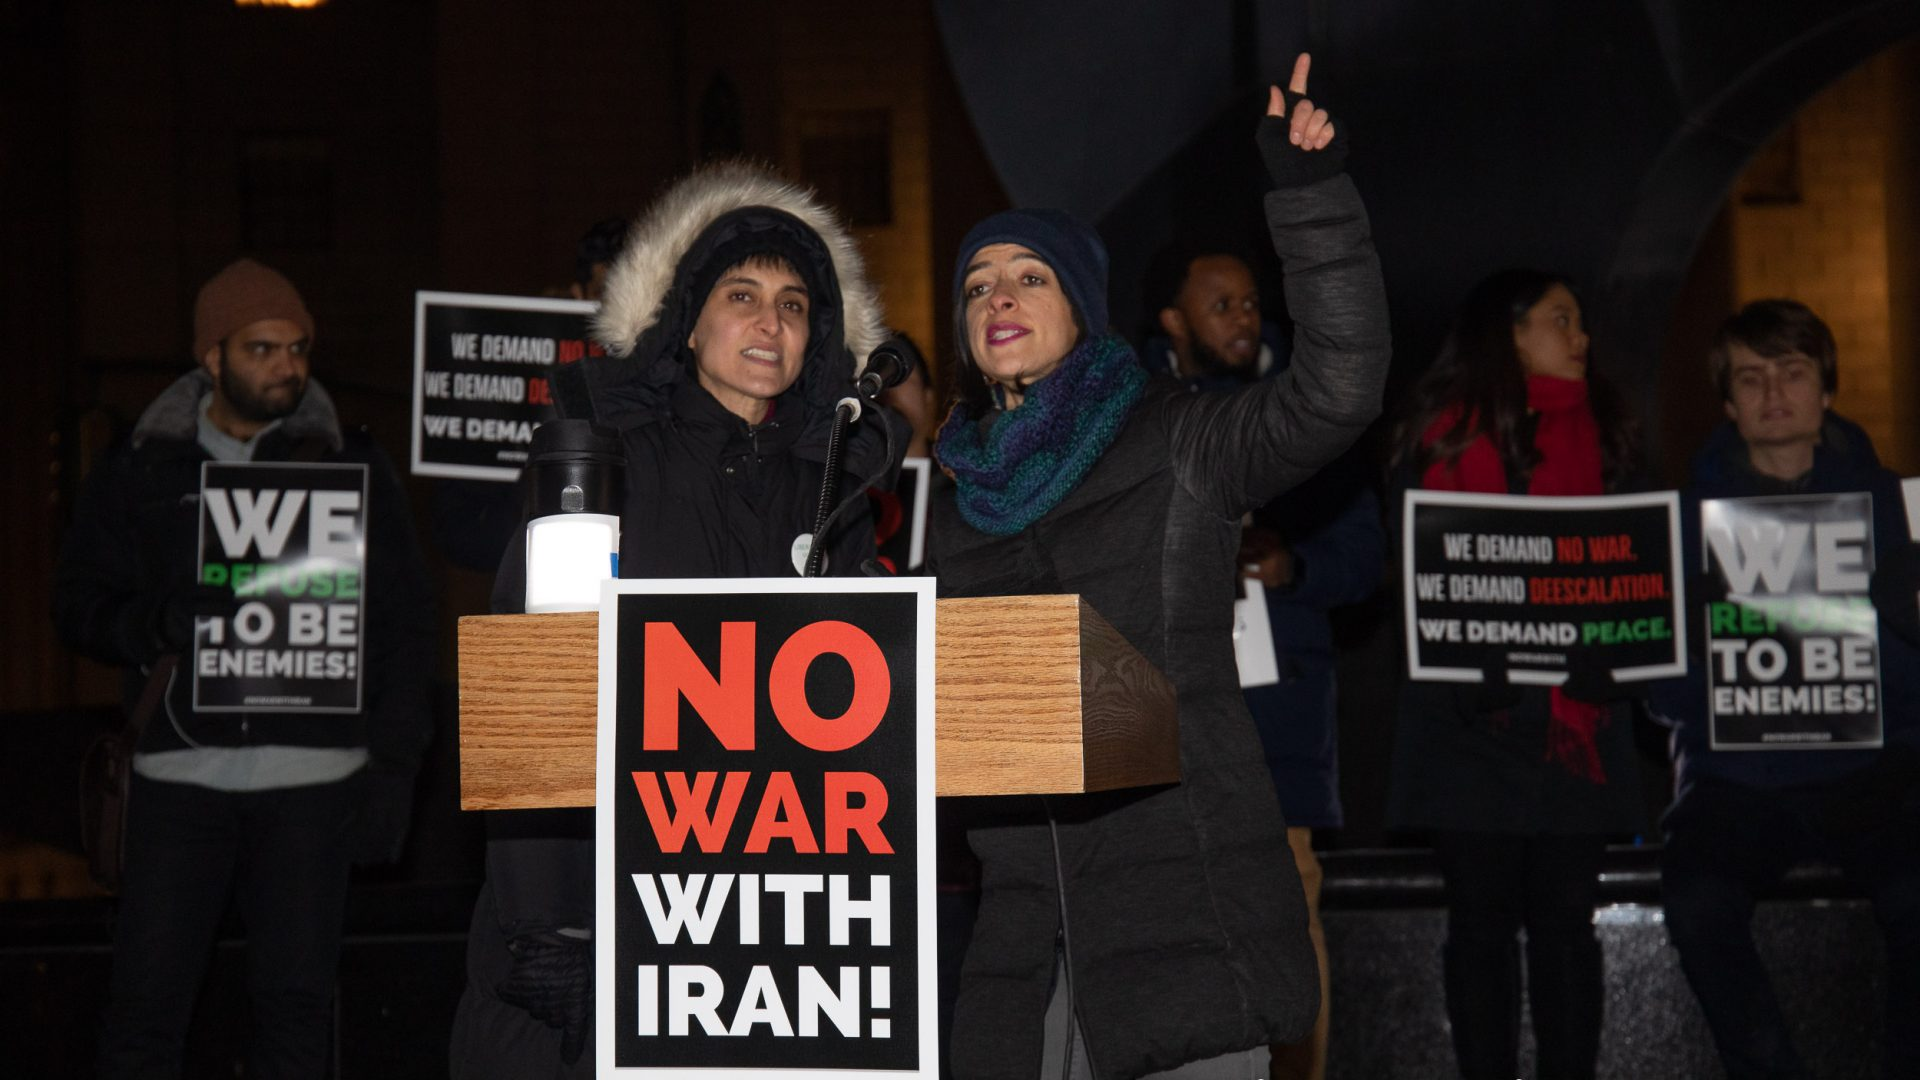 Foley Square Park. Manhattan, New York City. Thursday, January 9, 2020 - People gathered in Foley Square to tell Donald Trump: No War With Iran. We choose peace with Iran and other countries! Photo by Javier Soriano/www.JavierSoriano.com